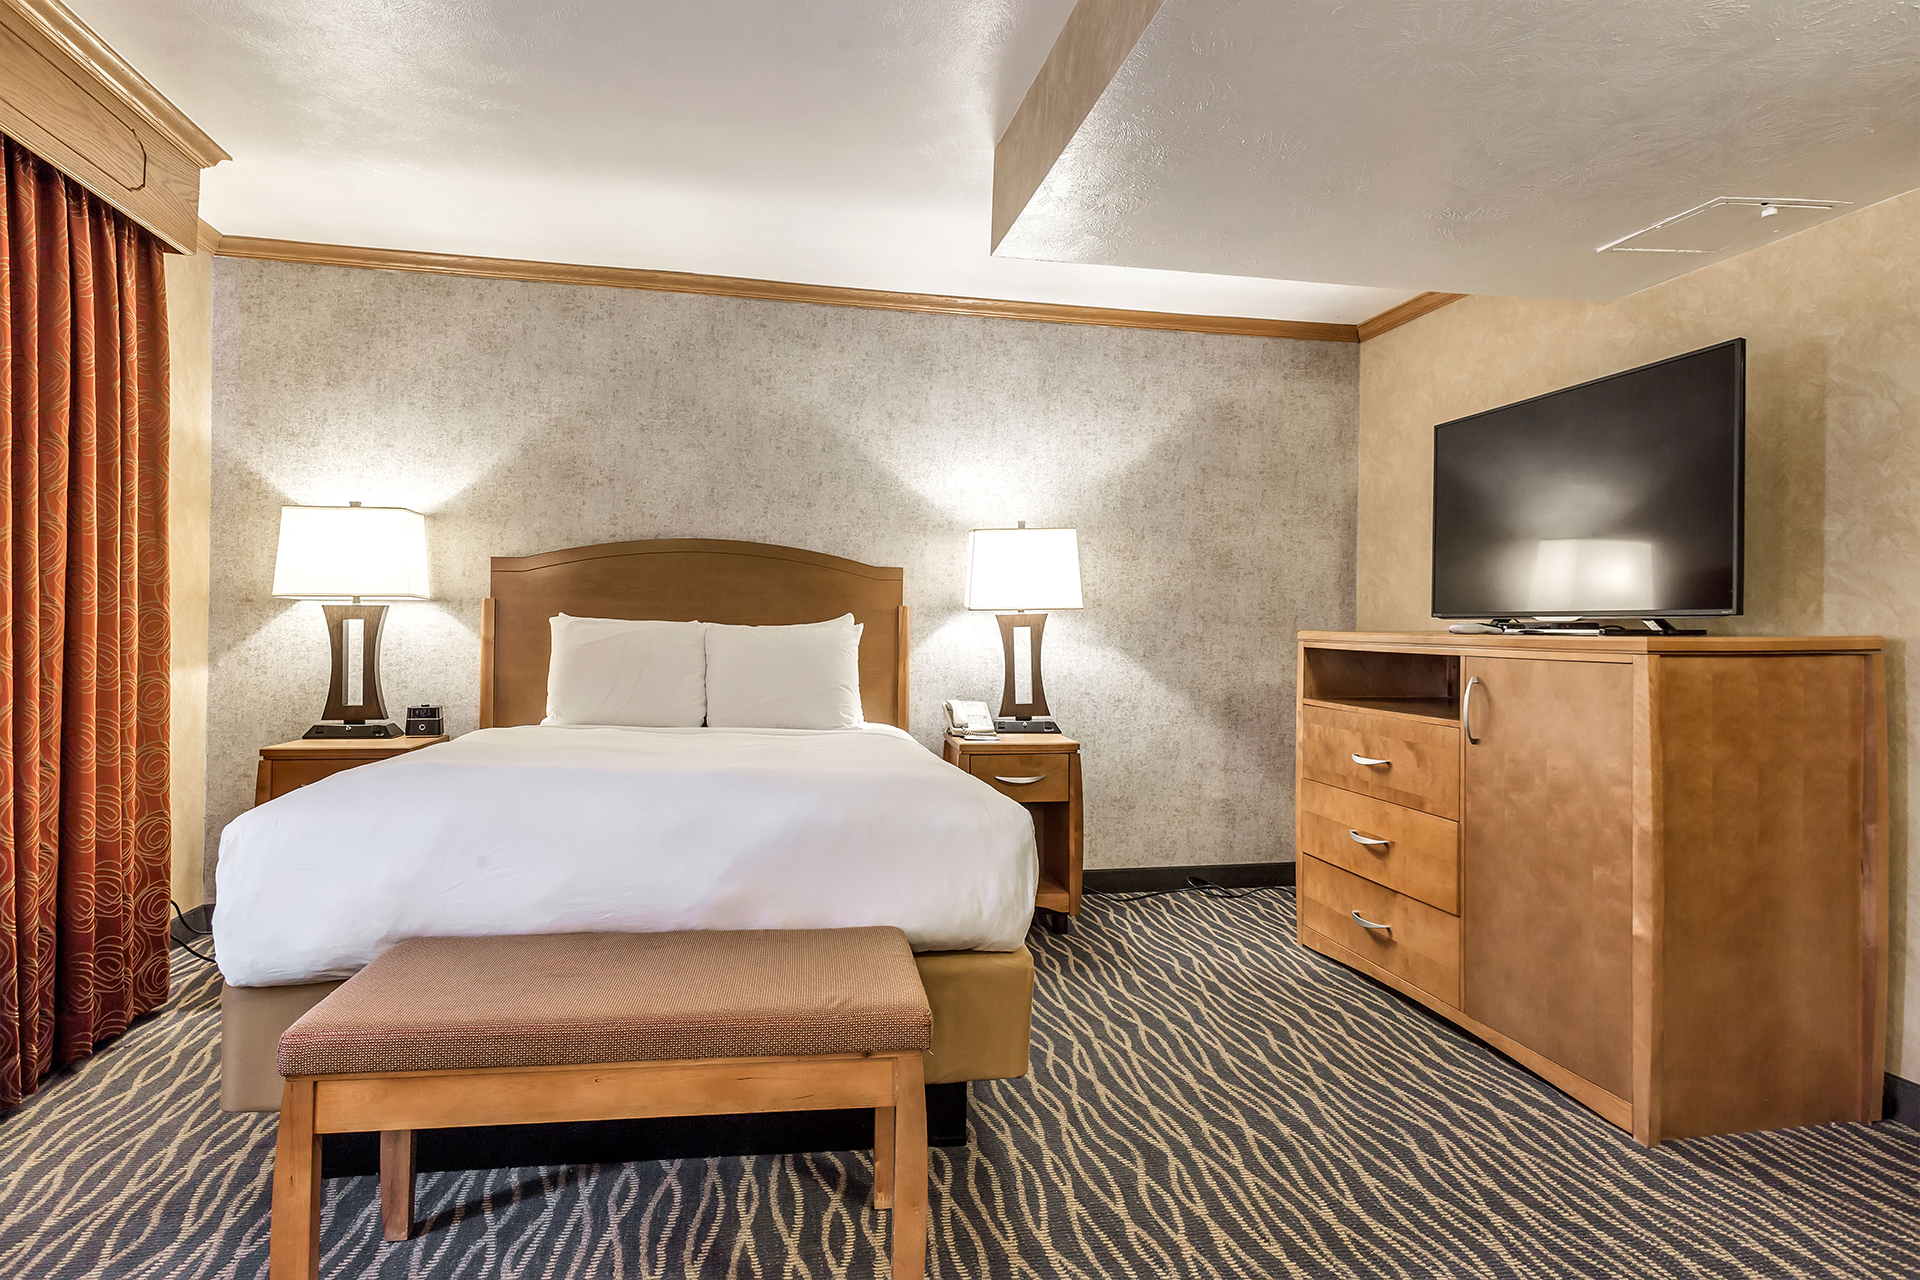 https://www.hotelsbyday.com/_data/default-hotel_image/2/10033/king-bed.jpg